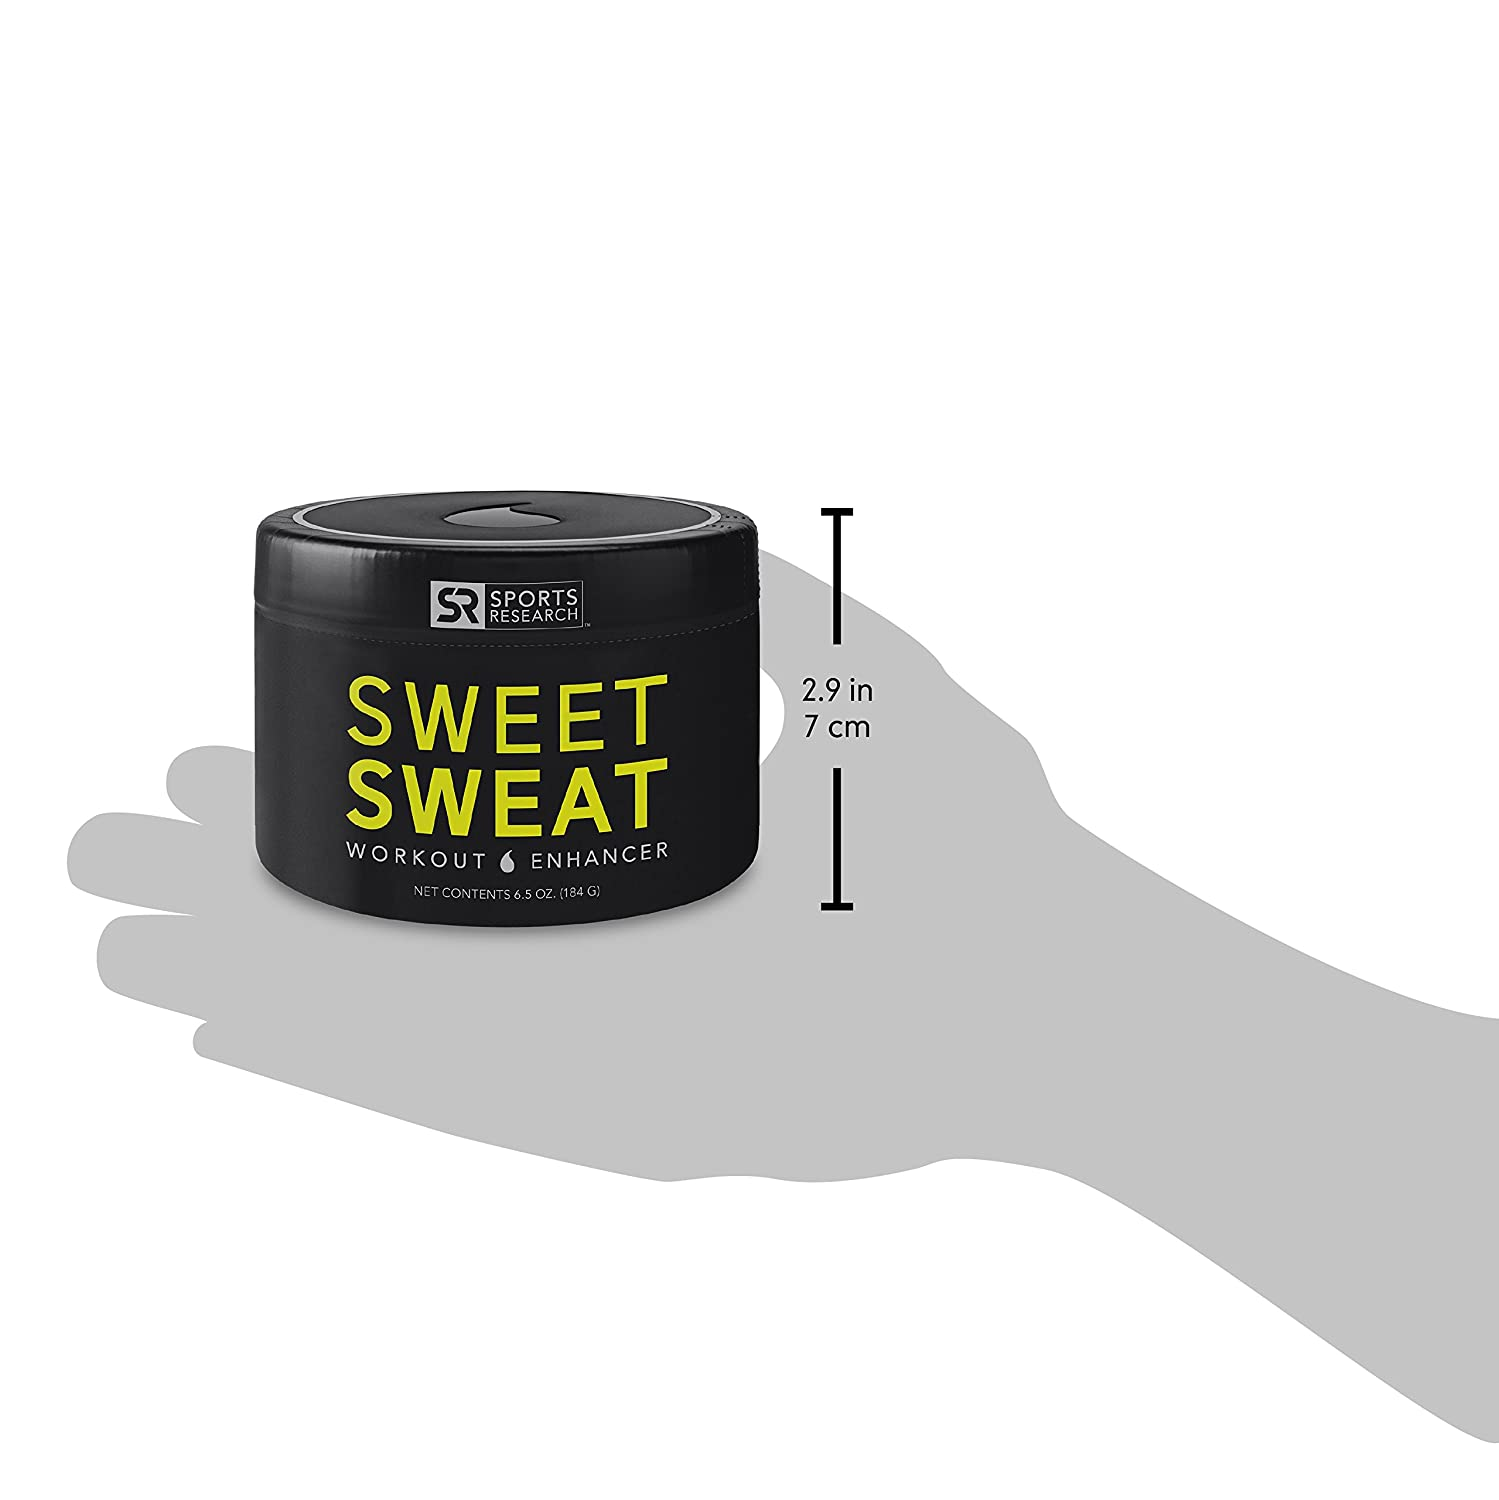 www.sweatsweet.com teen pic Amazon.com: Sports Research Sweet Sweat Jar, 6.5-Ounce: Health & Personal  Care